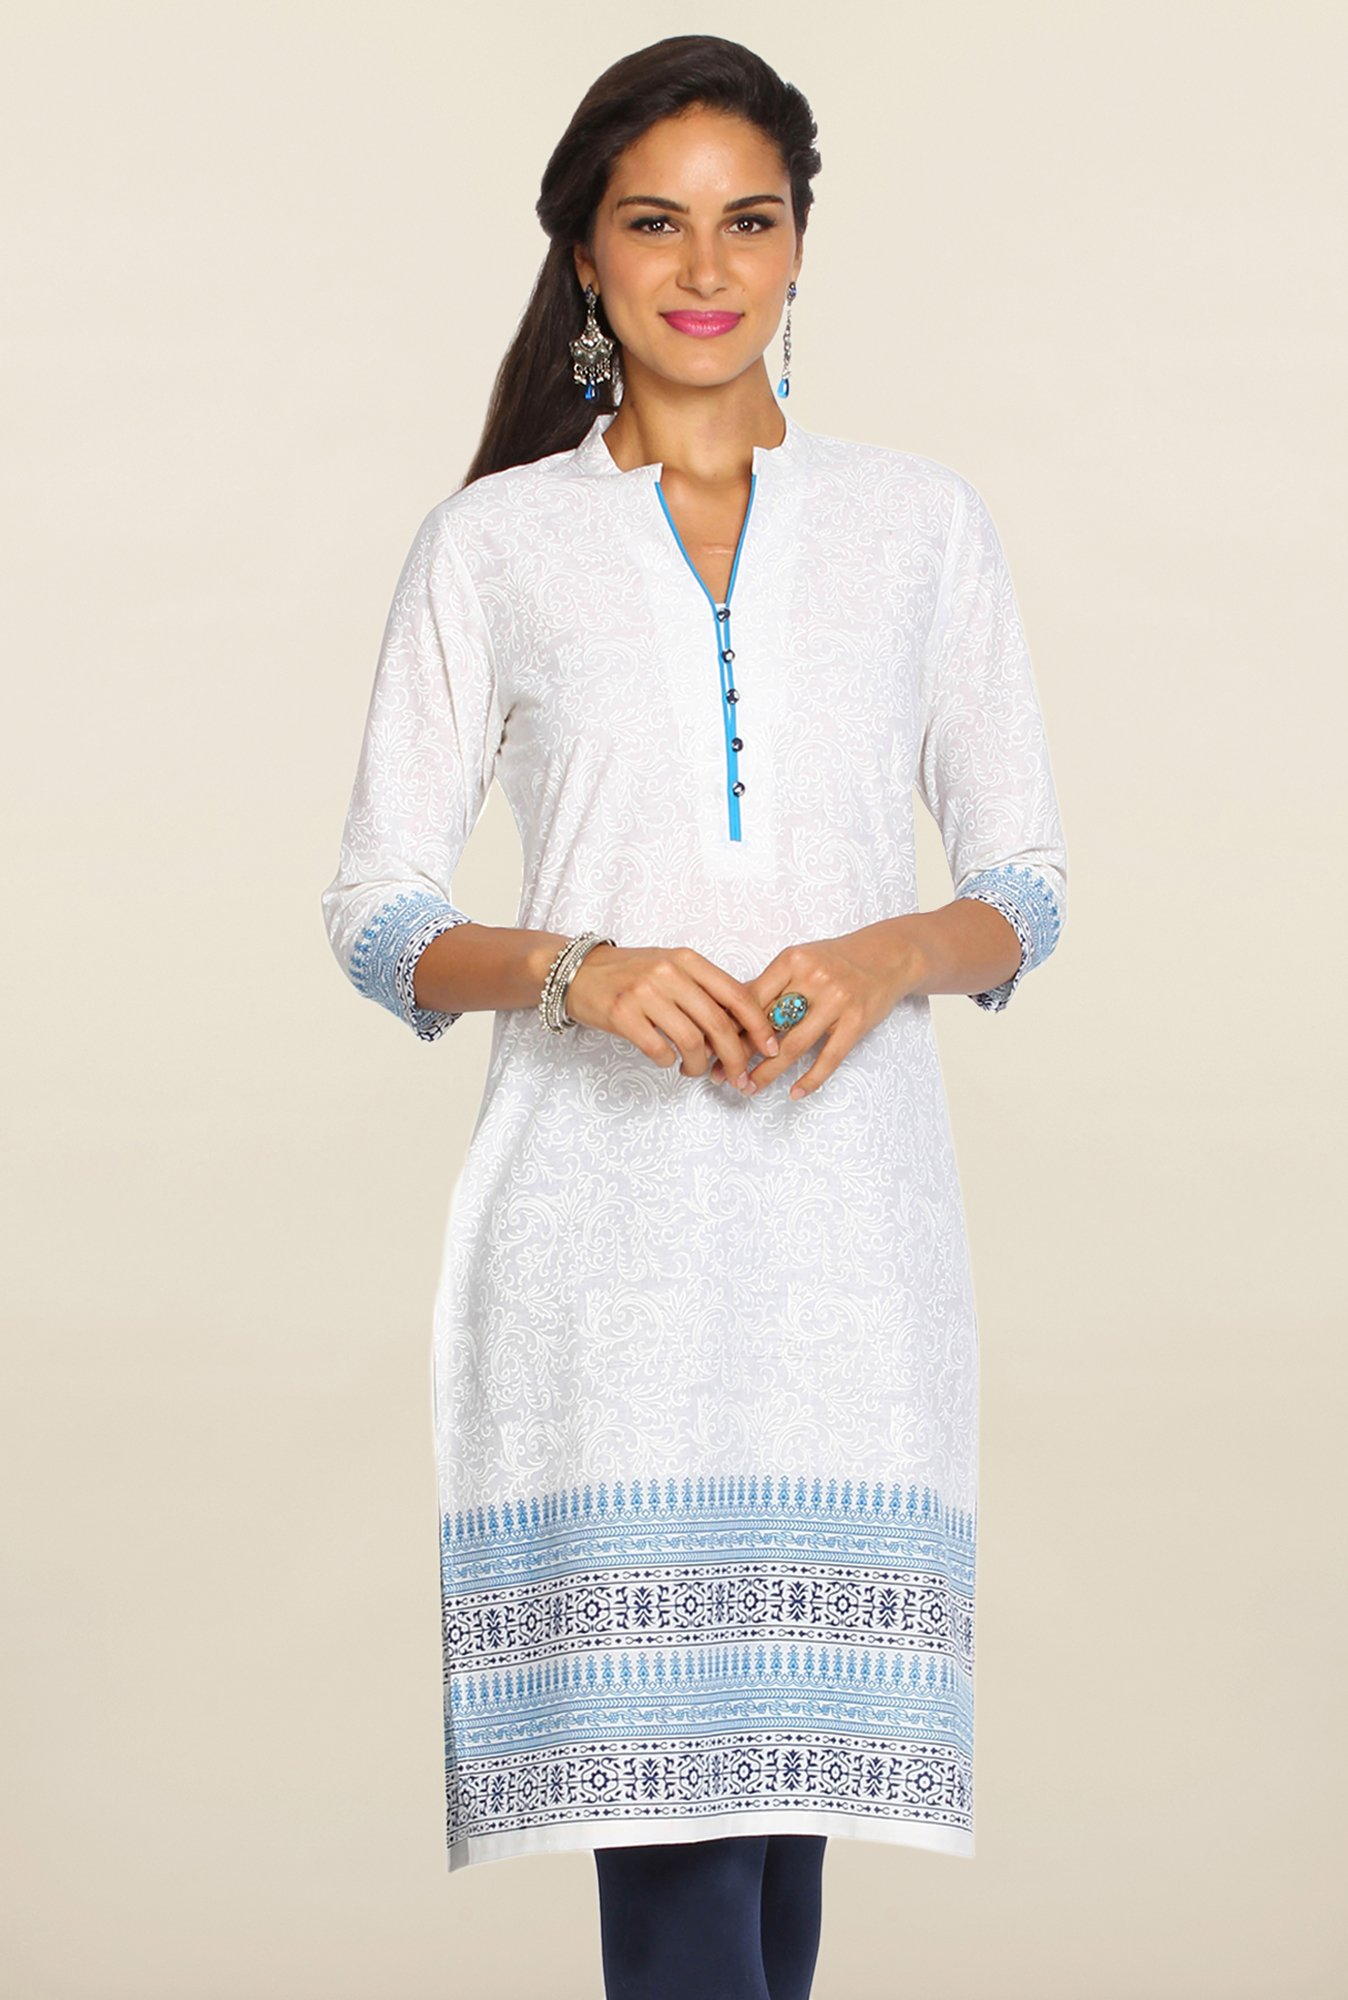 Soch White & Blue Floral Print Cotton Kurti